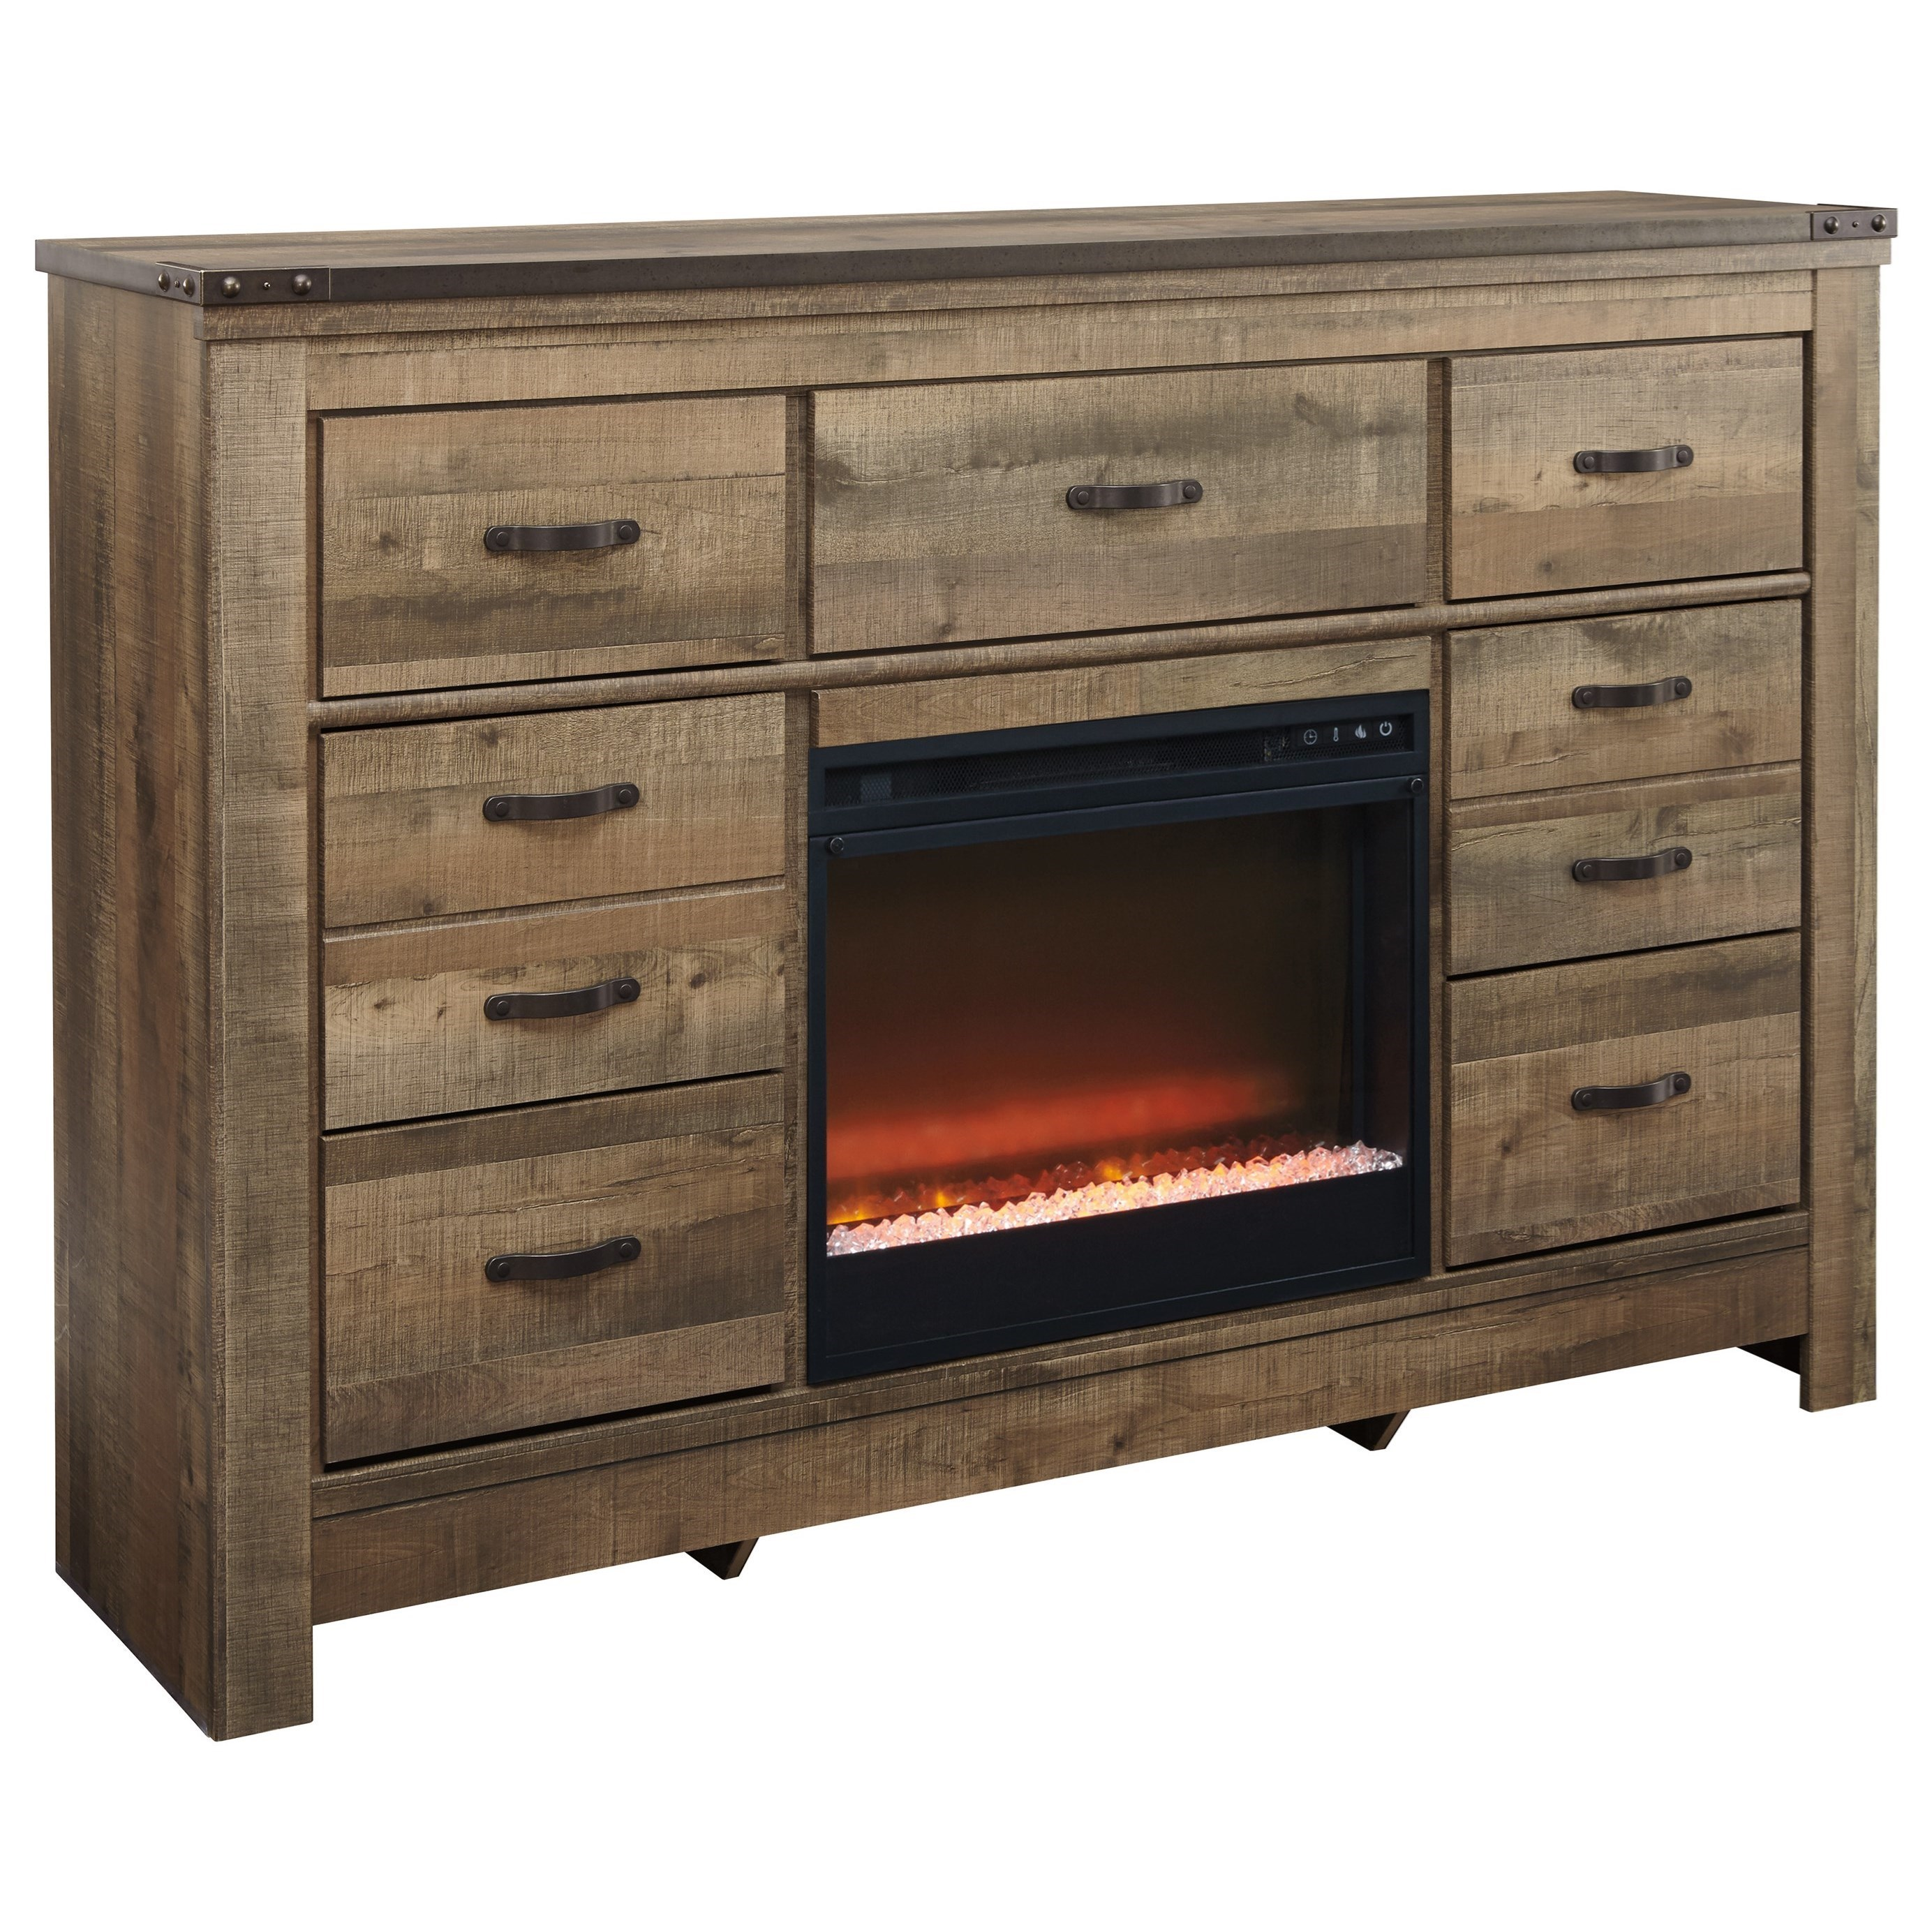 Rustic Dresser with Fireplace Insert & Top Metal Banding